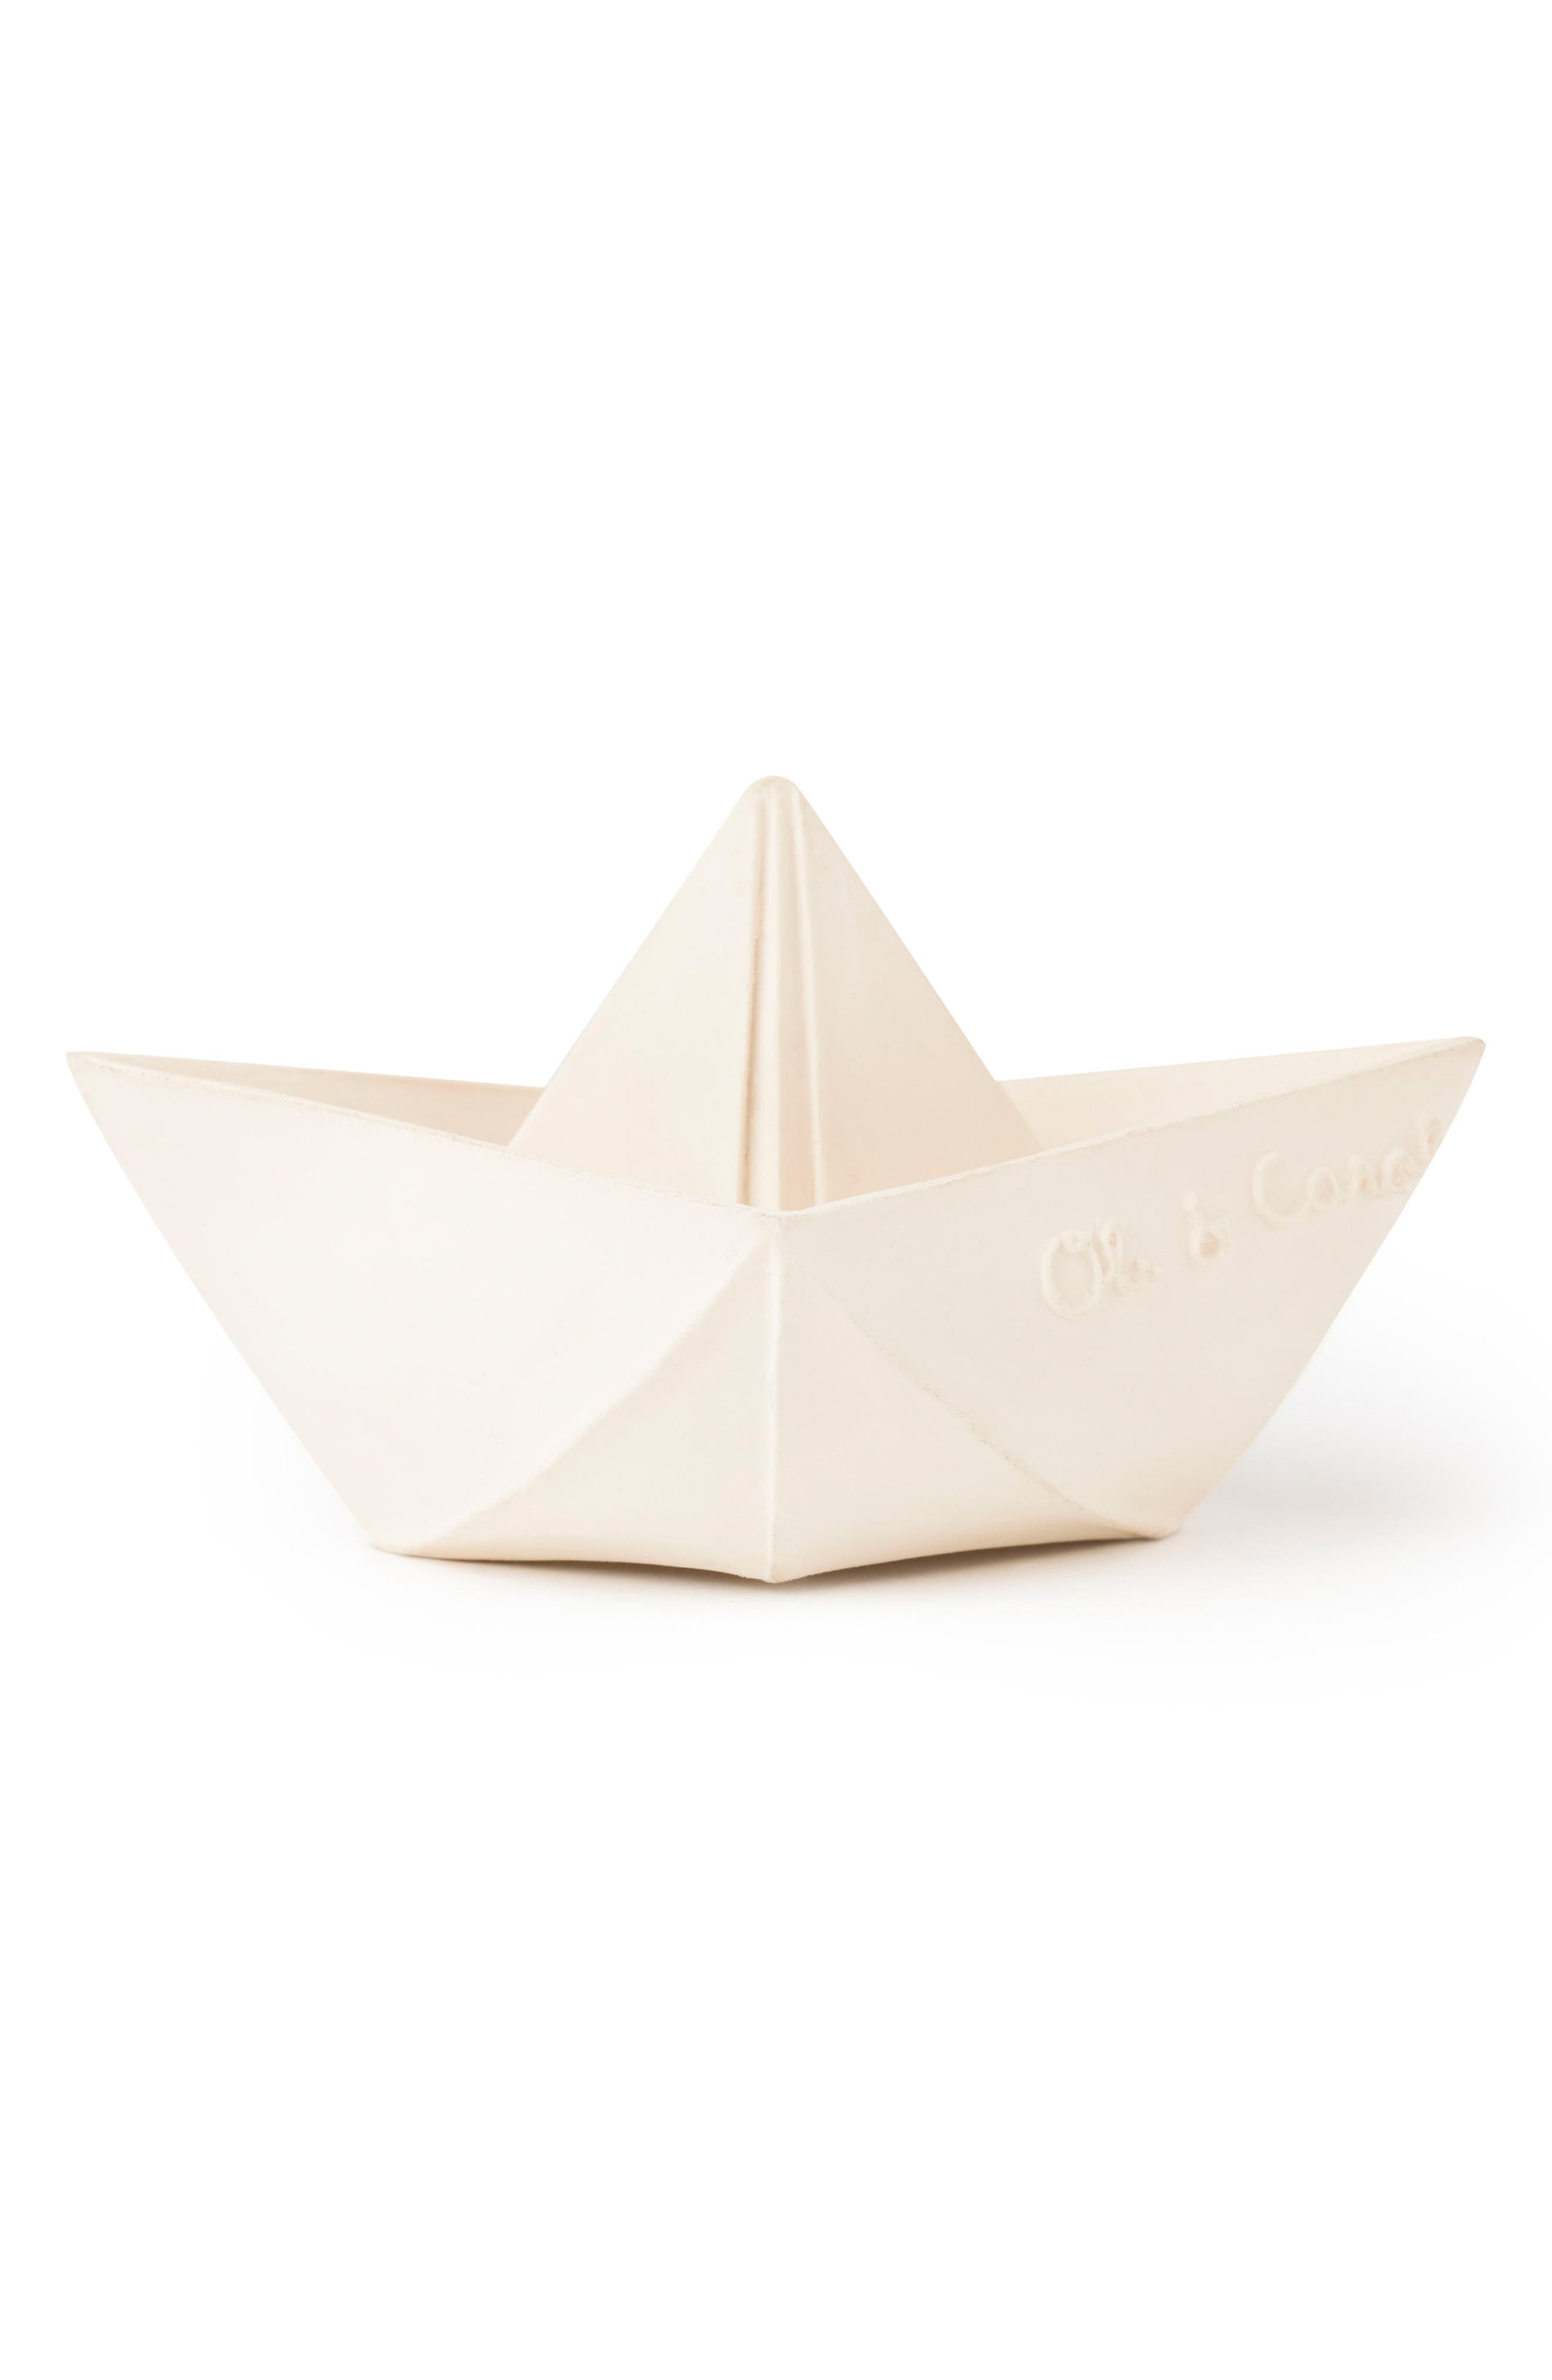 Origami Boat Bath Toy,                             Alternate thumbnail 2, color,                             WHITE